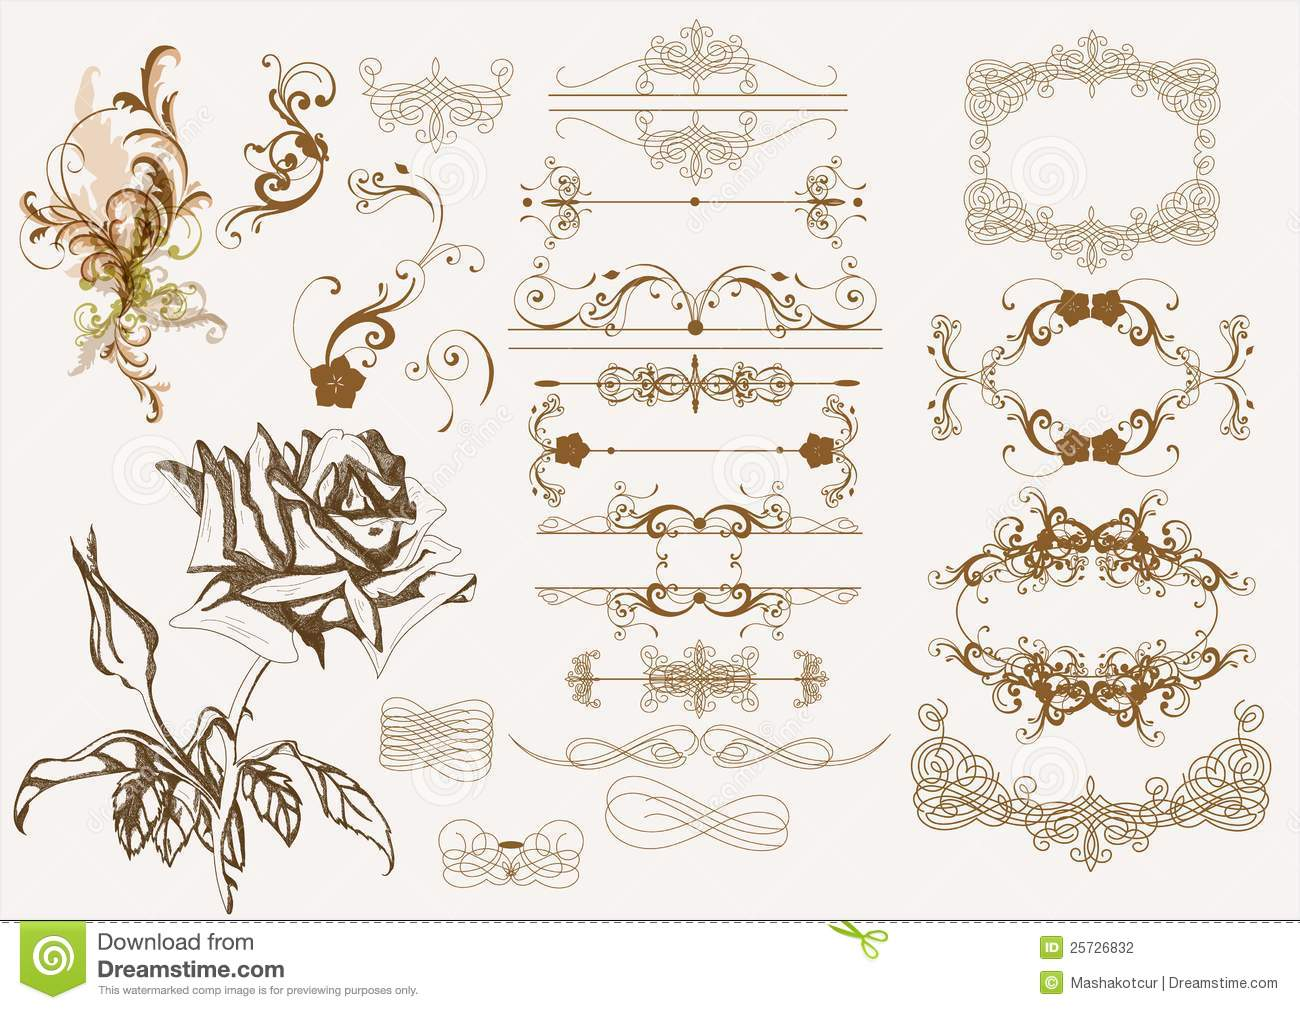 Elements For Design : Calligraphic vintage design elements stock photography